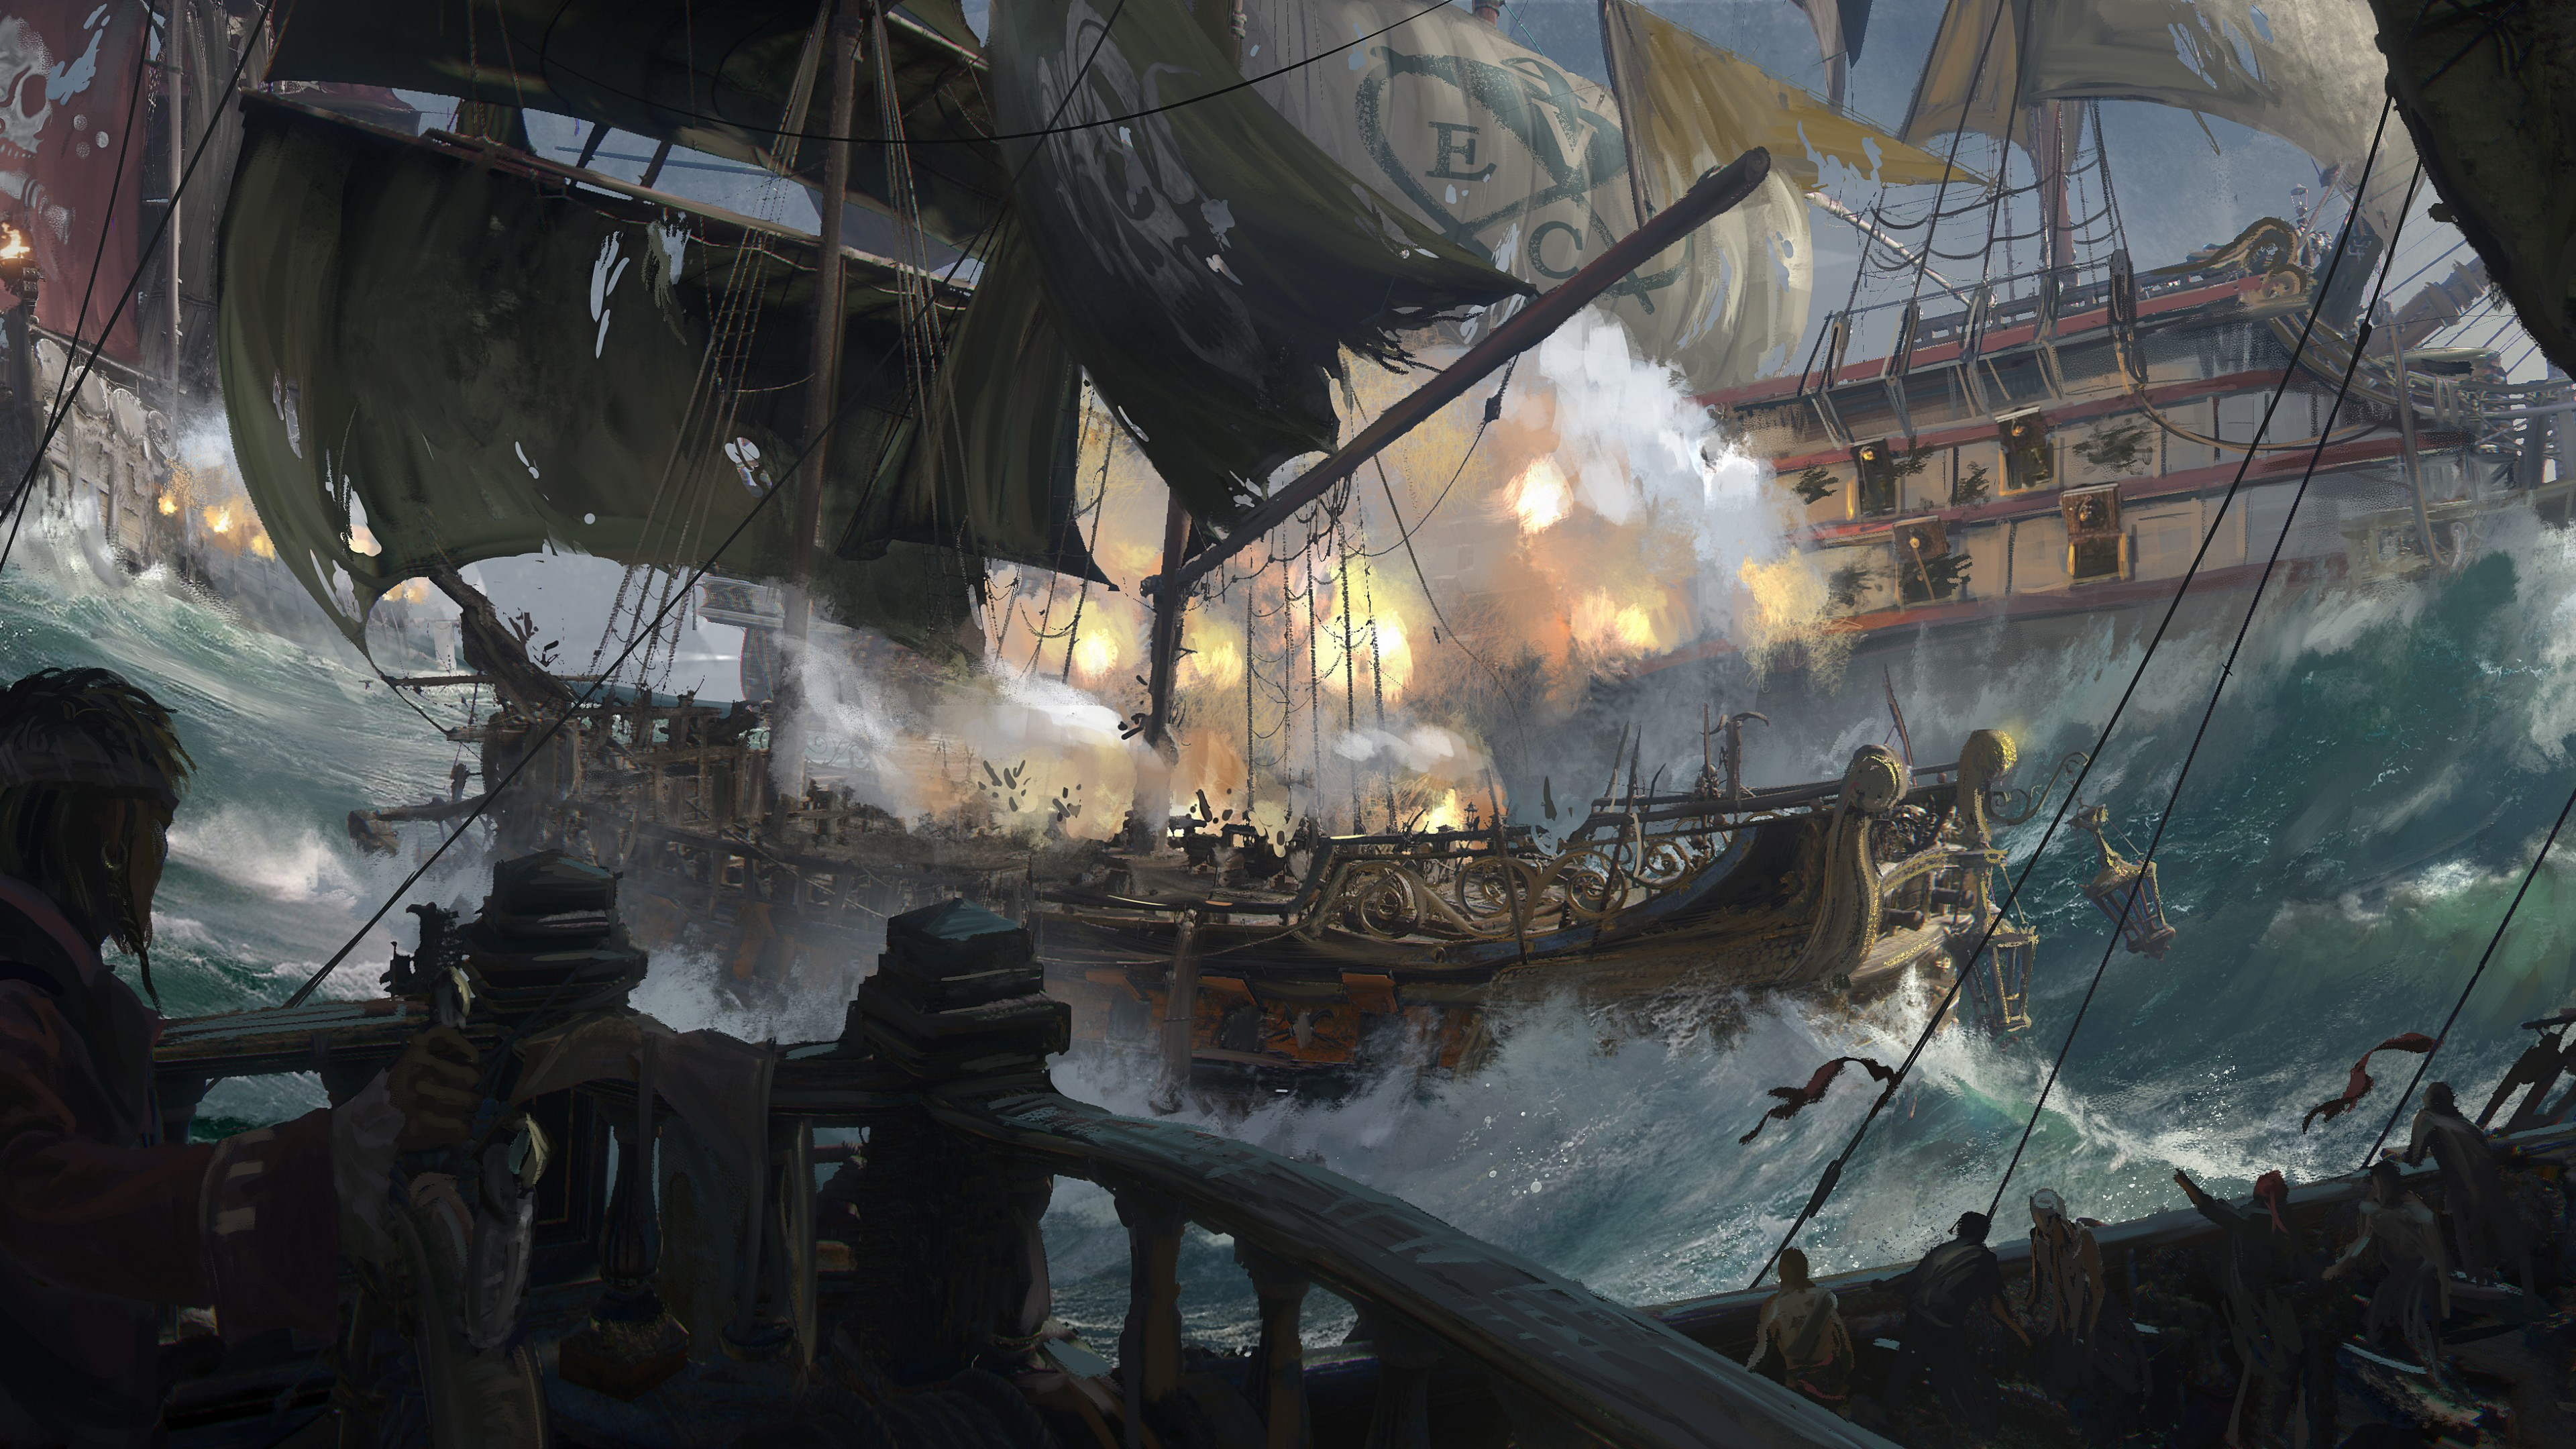 Skull And Bones 2018 Video Game 4k Hd Desktop Wallpaper: Wallpaper Skull & Bones, E3 2018, Artwork, 5K, Games #19087